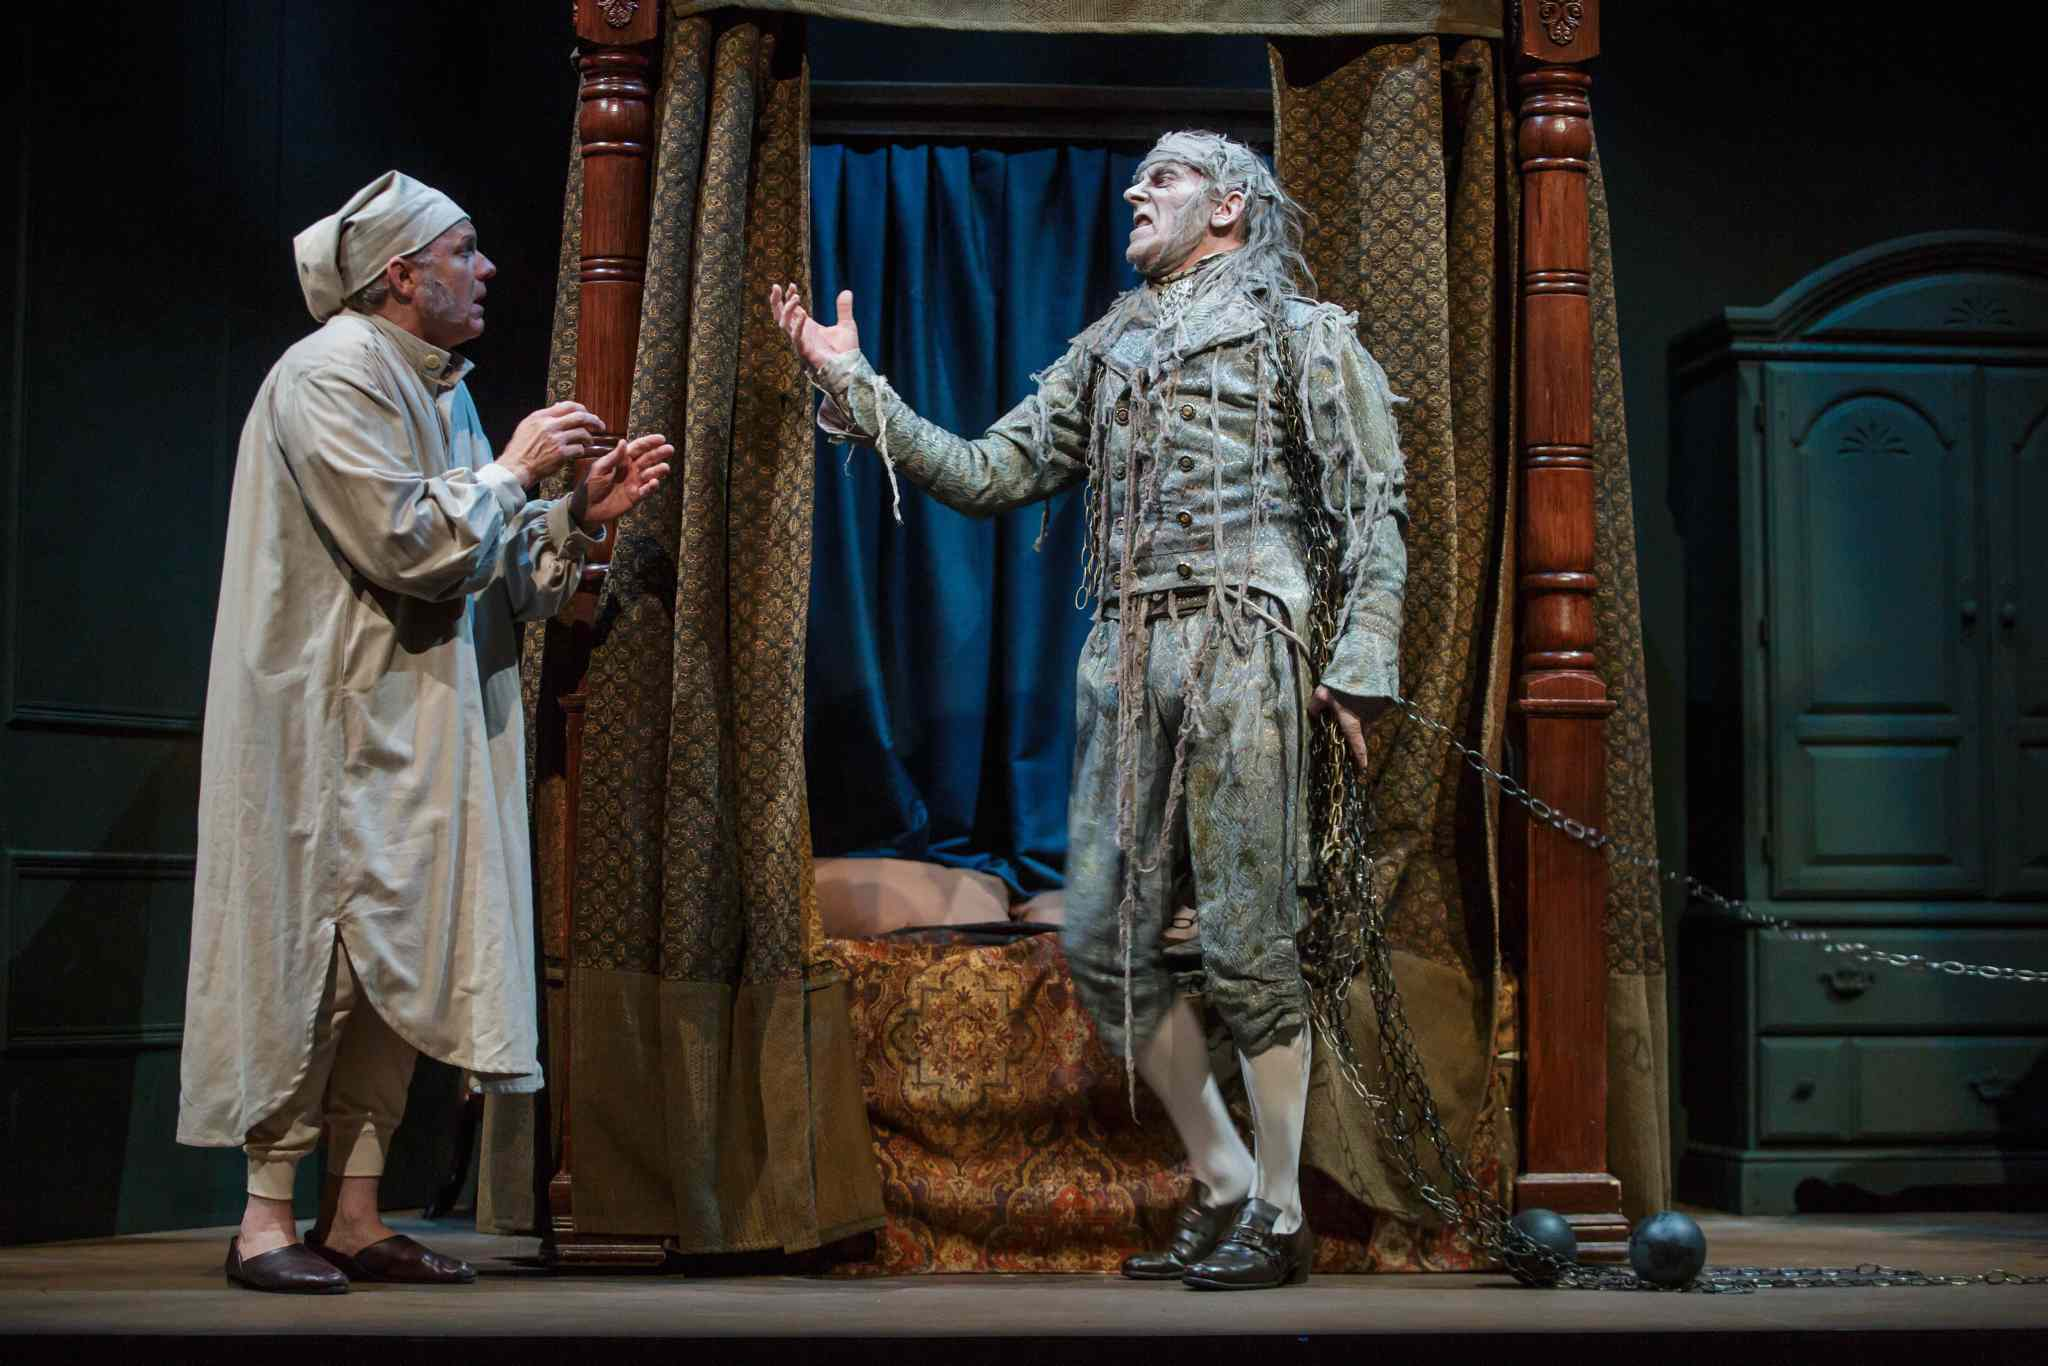 Arne MacPherson as Jacob Marley (right) appears to Ebenezer Scrooge's (Robb Paterson) during a technical rehearsal. (Mike Deal / Winnipeg Free Press)